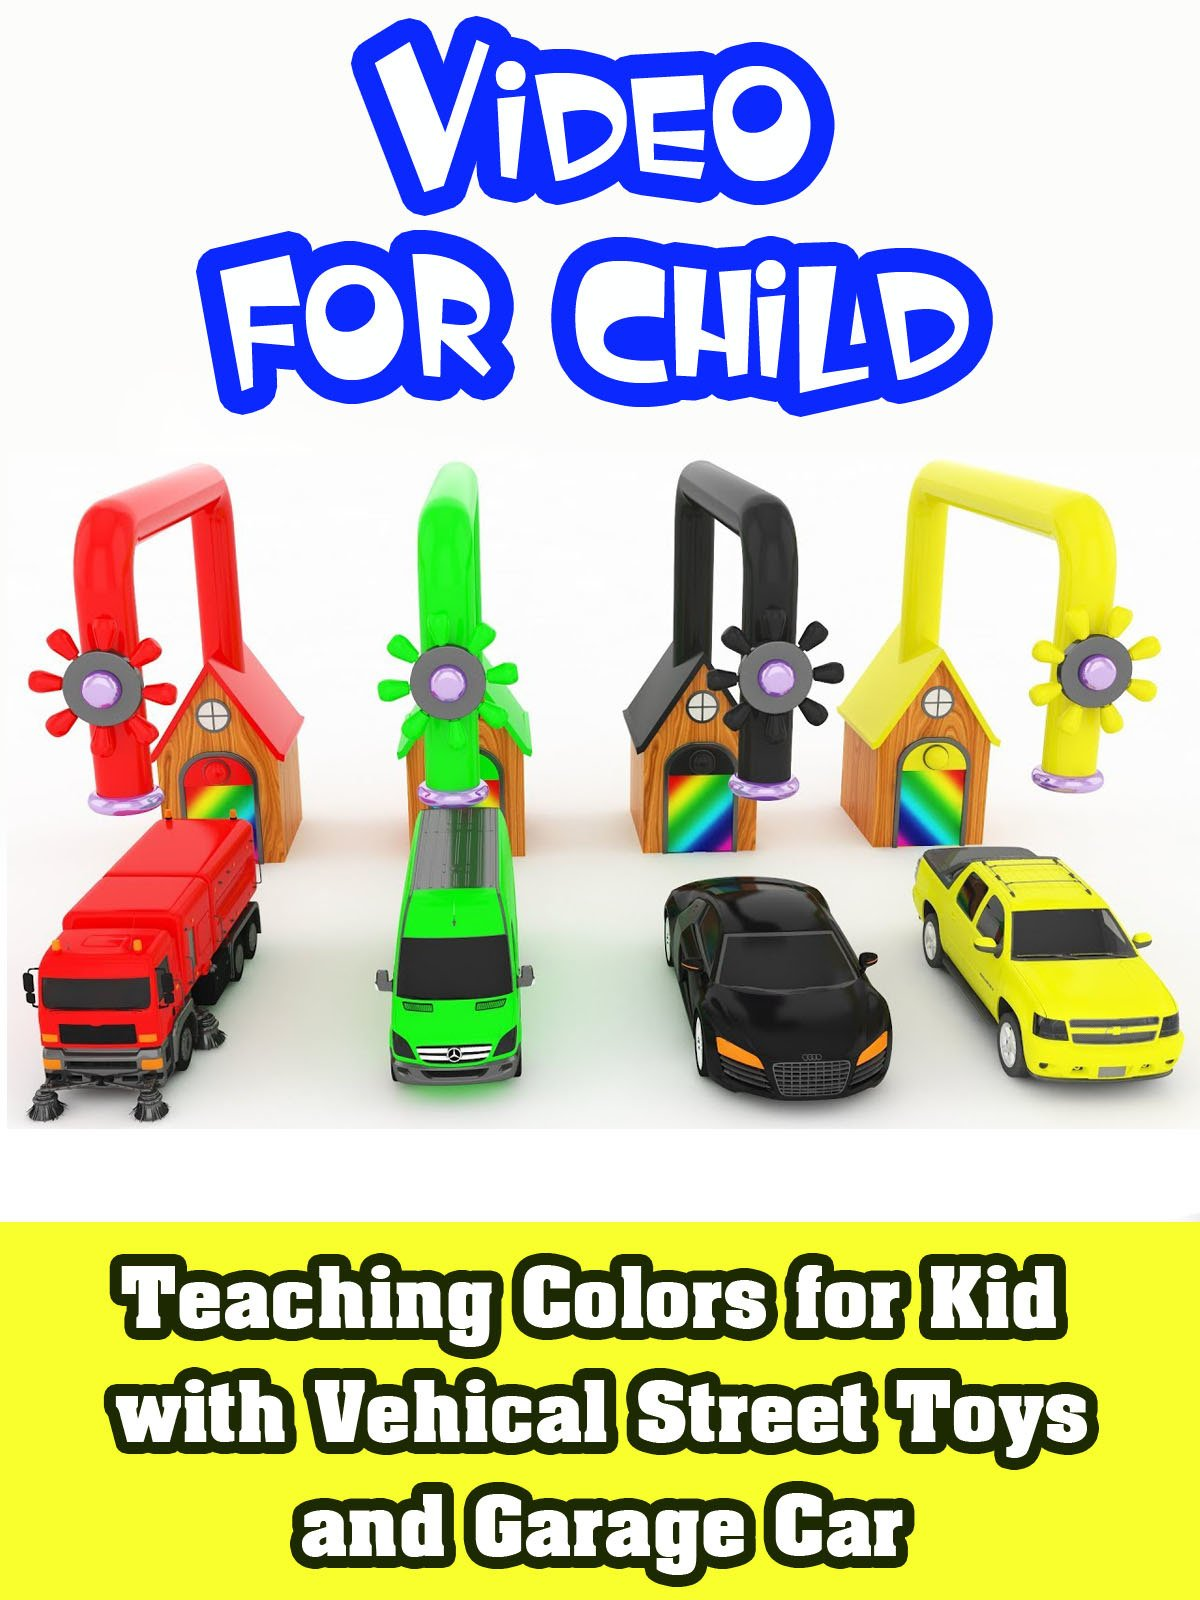 Teaching colors for kid with Vehical Street Toys and Garage Car